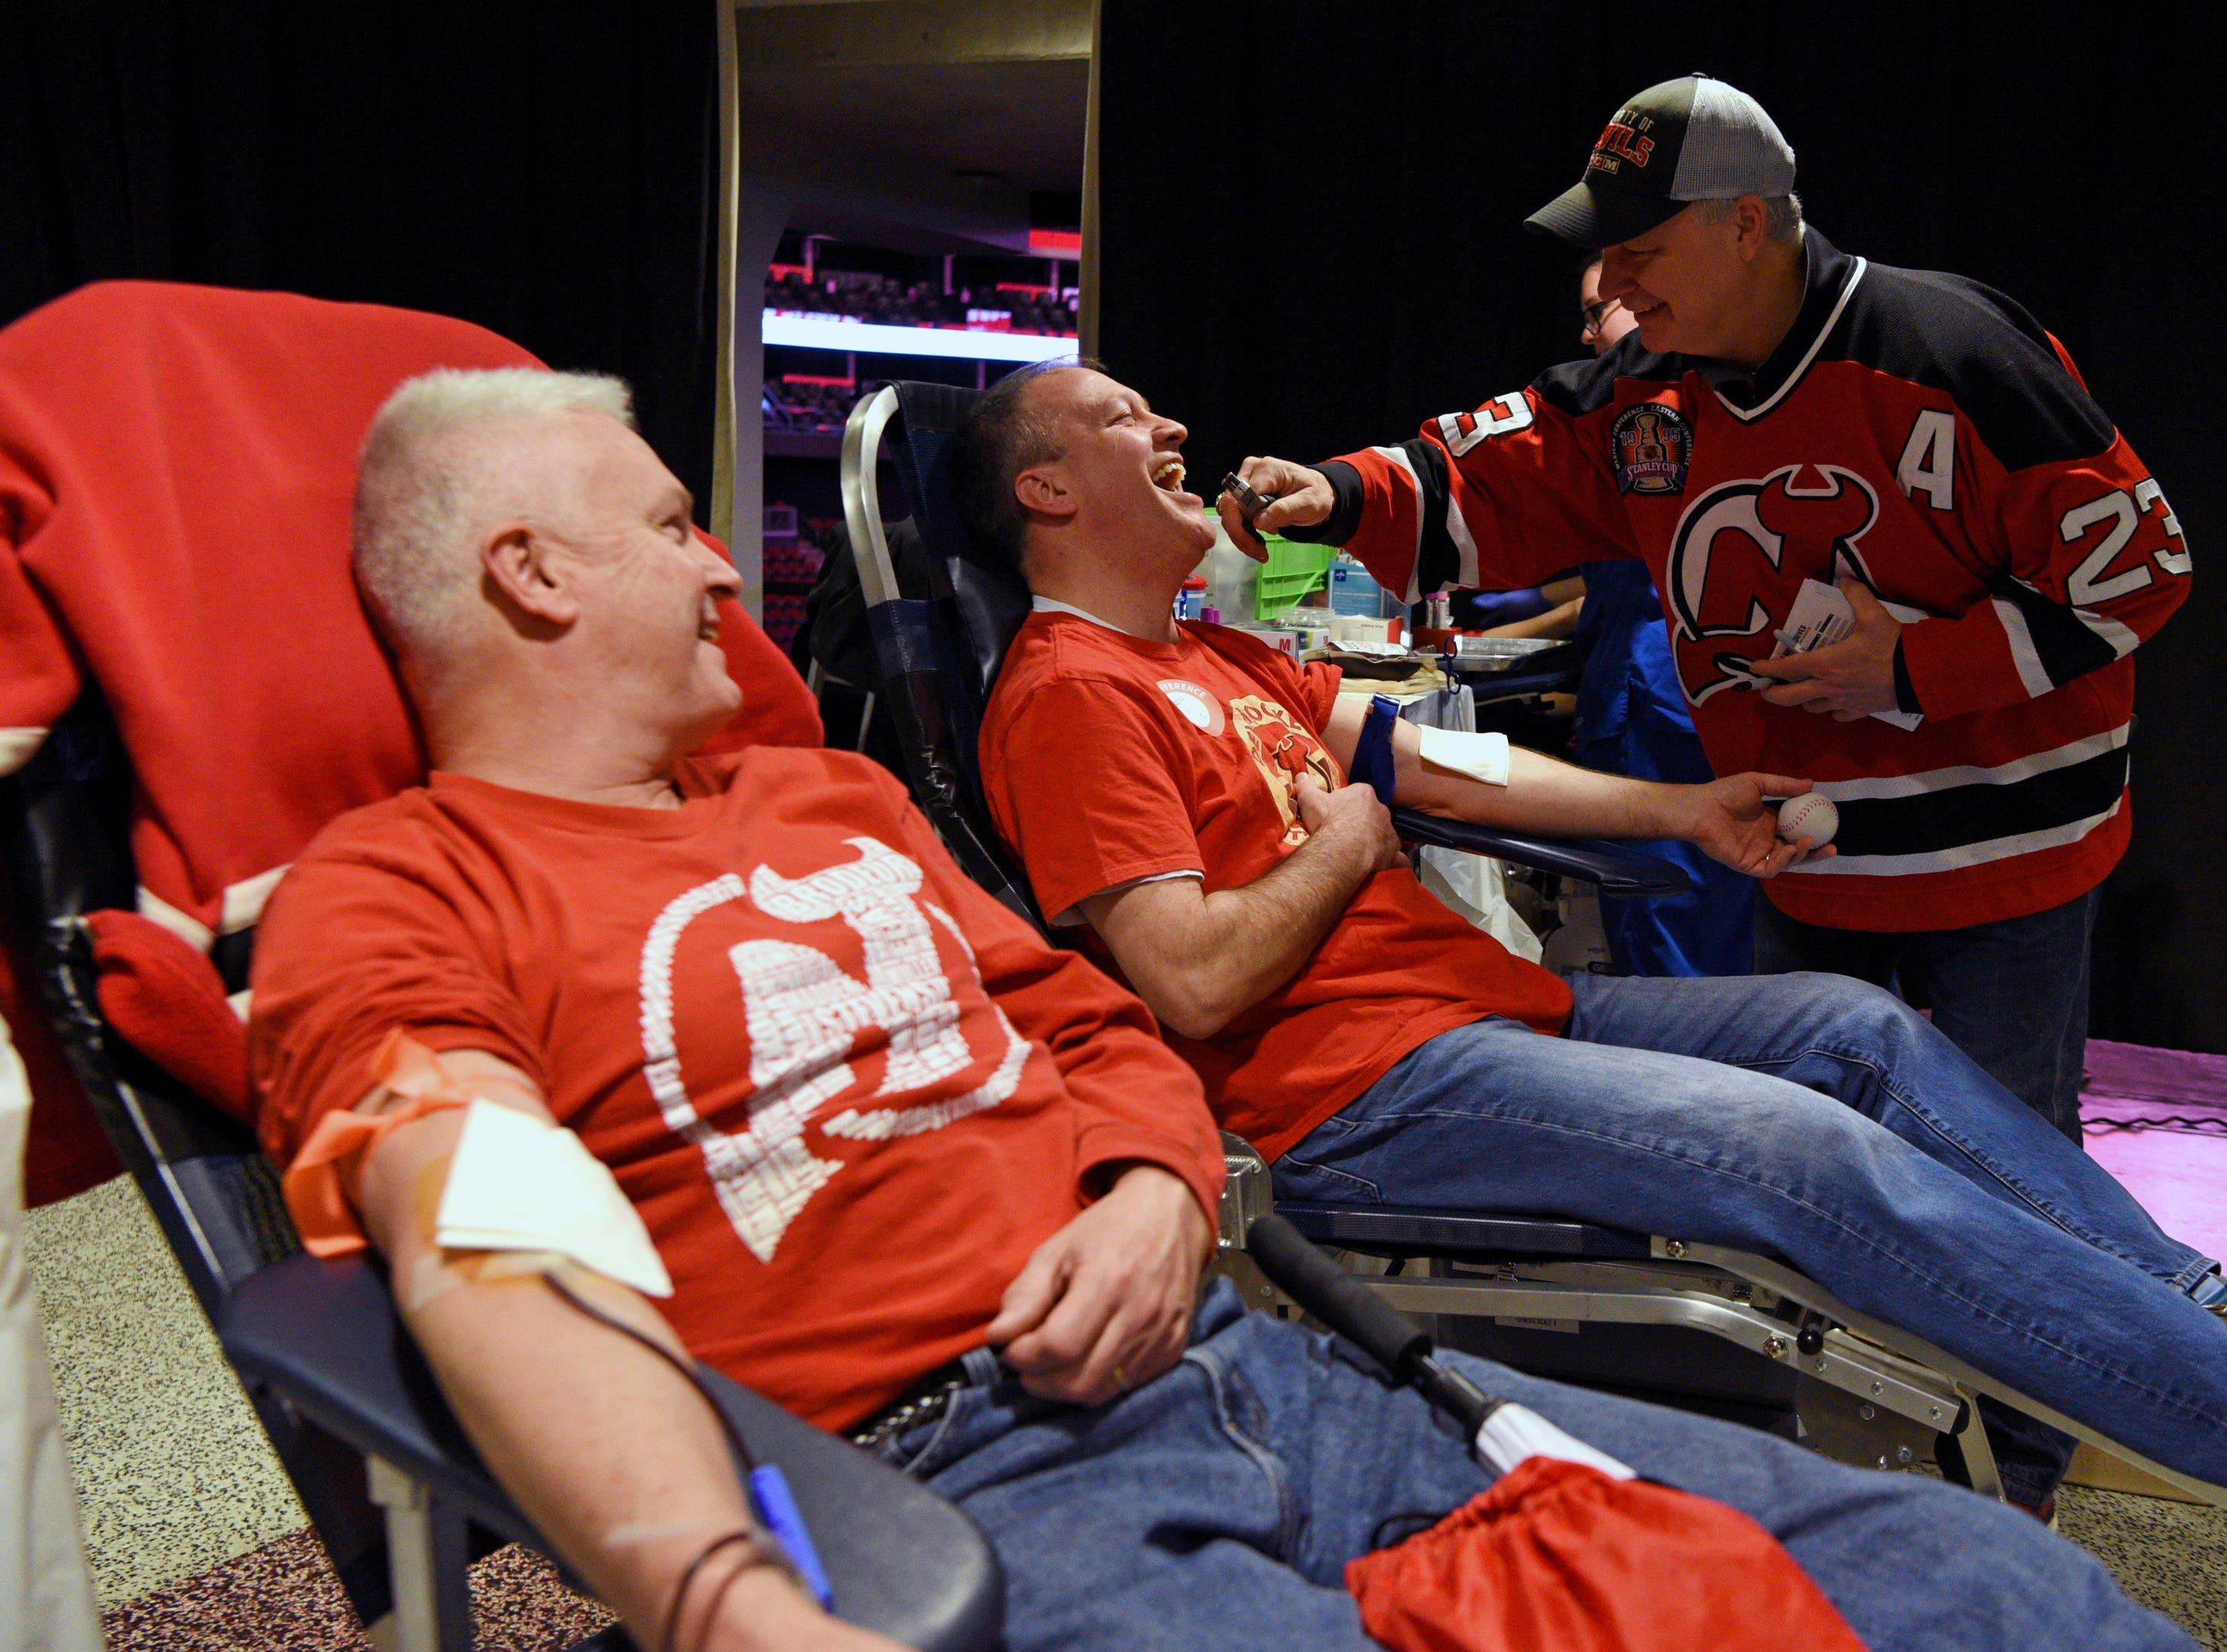 The New Jersey Devils and RWJBarnabas Health hosted their third annual blood drive in coordination with the American Red Cross on Sunday, March 10, 2019 at the Prudential Center in Newark. Devils' alumni Bruce Driver, a member of the 1995 Devils Stanley Cup winning team, pretends to pull a tooth from Jim Leonard of Branch Brook, while he donates blood.